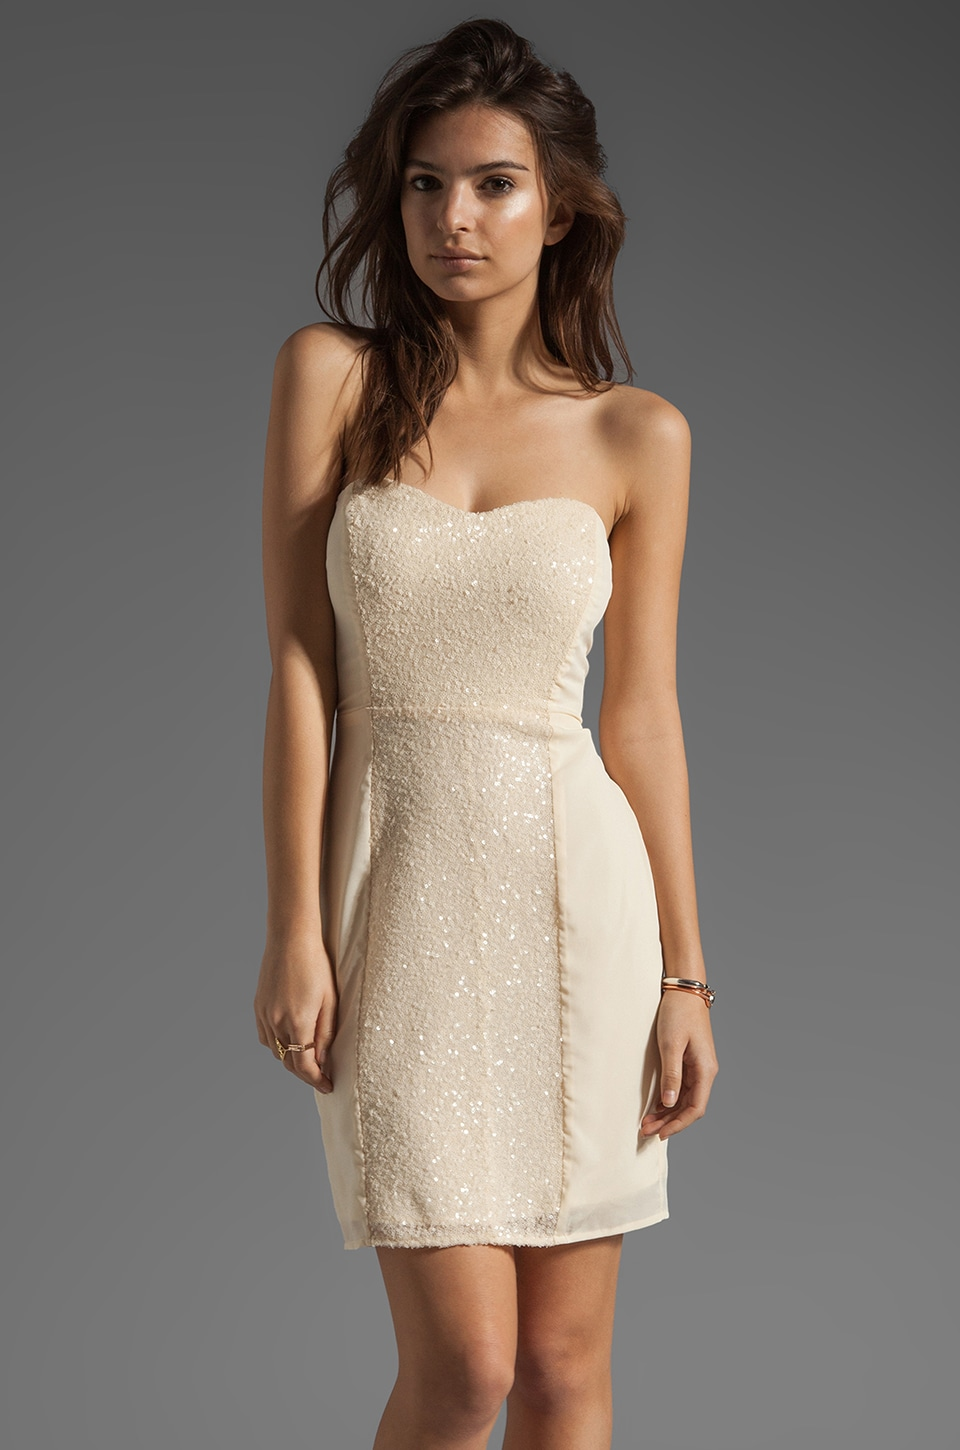 MM Couture by Miss Me Strapless Mini Dress With Sequin in Ivory